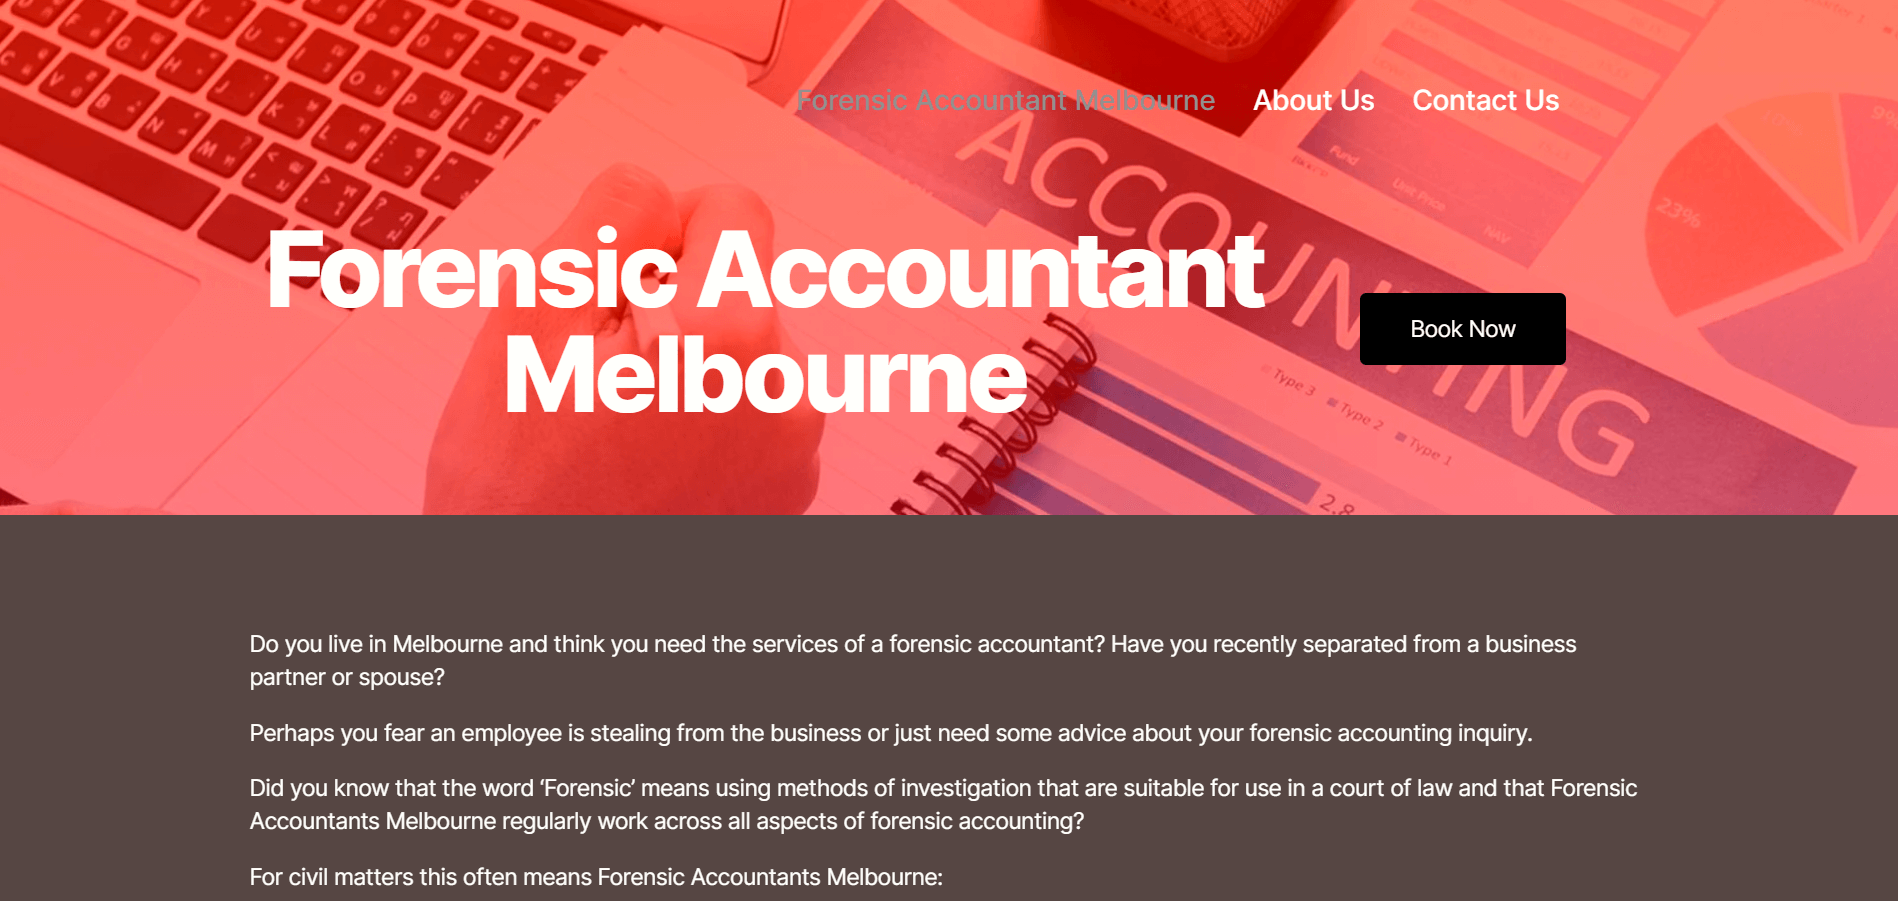 Forensic Accountant Melbourne